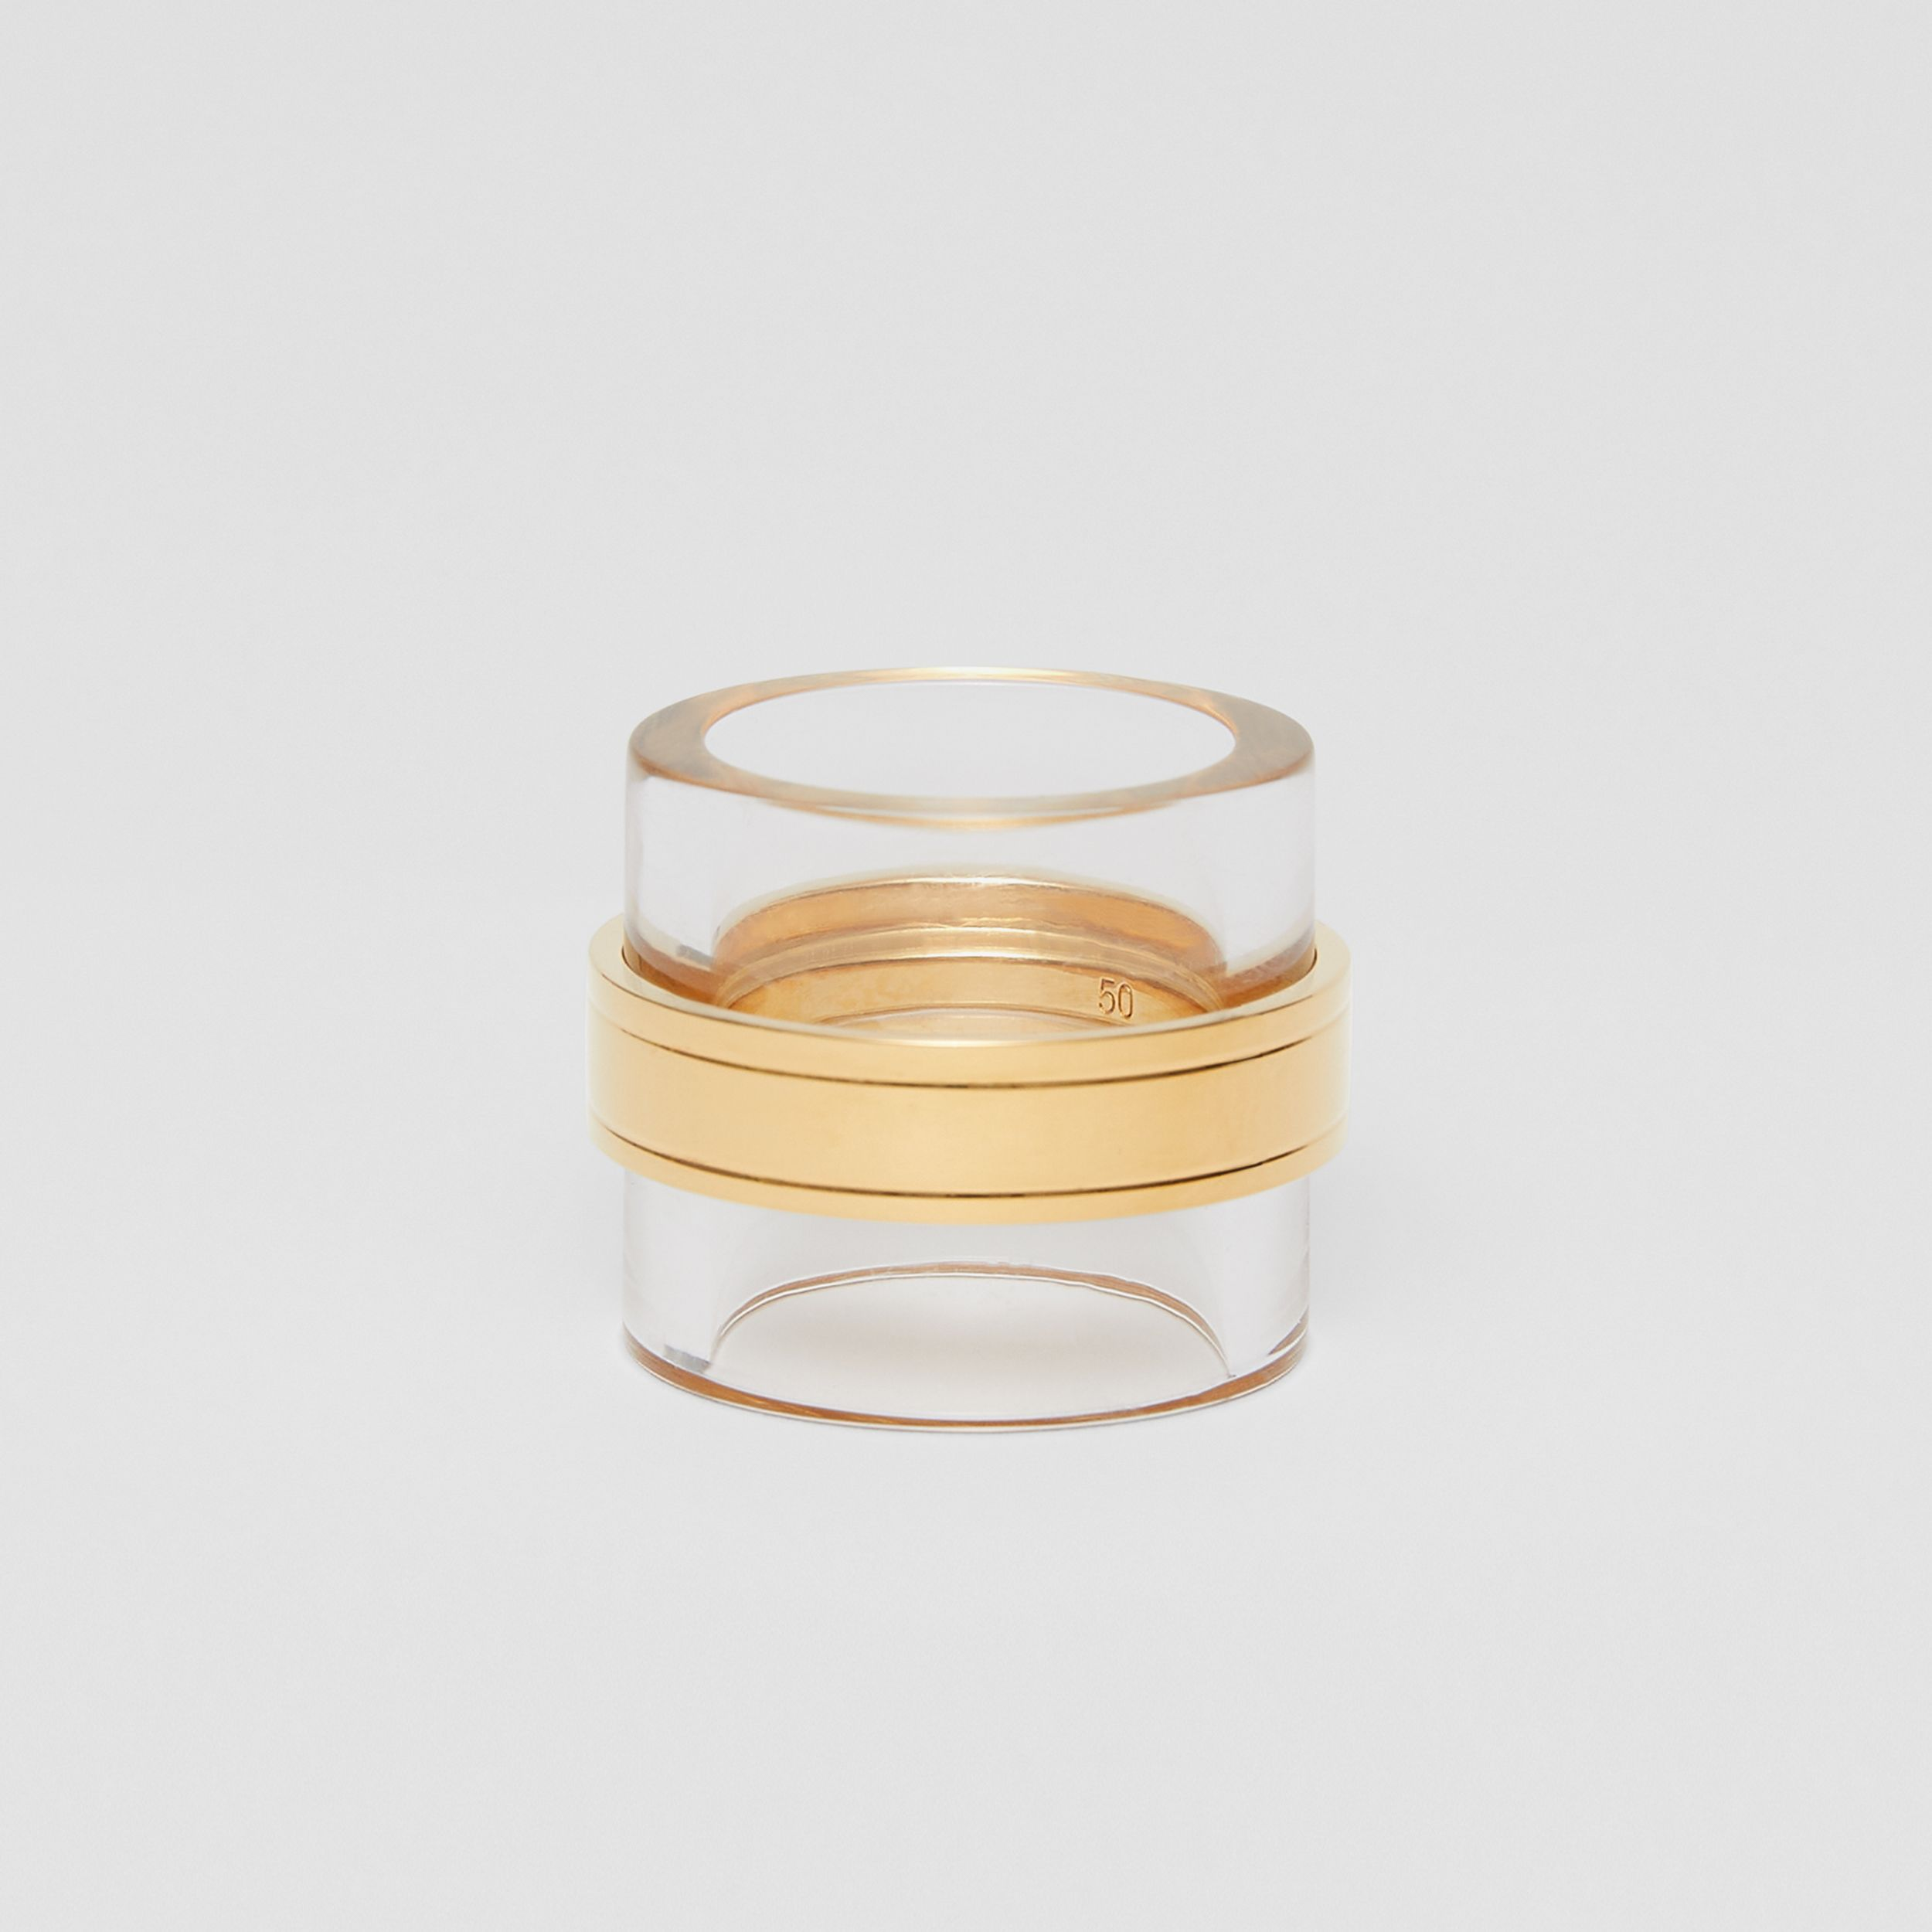 Resin and Gold-plated Cylindrical Ring in Light Gold/beige - Women | Burberry - 1